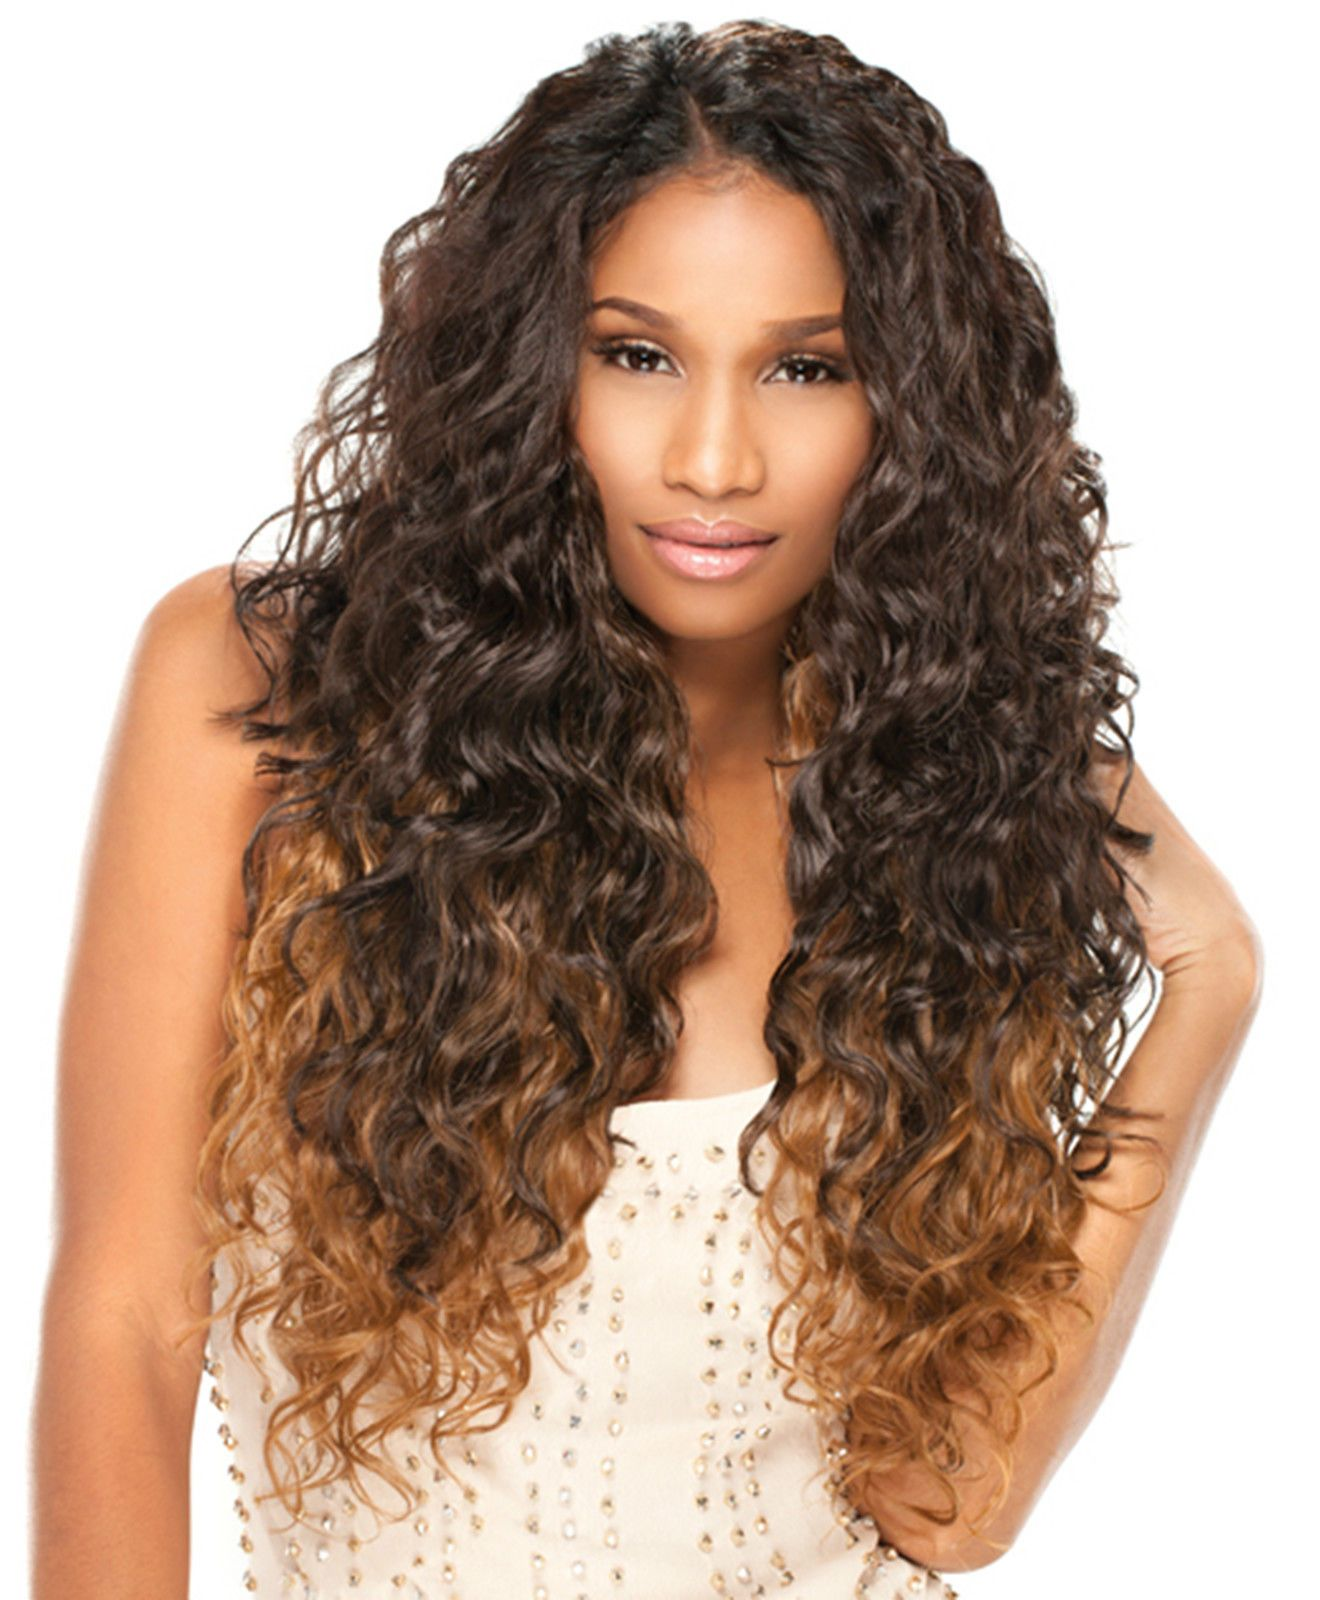 Natural curly kanubia easy brazilian style pcs